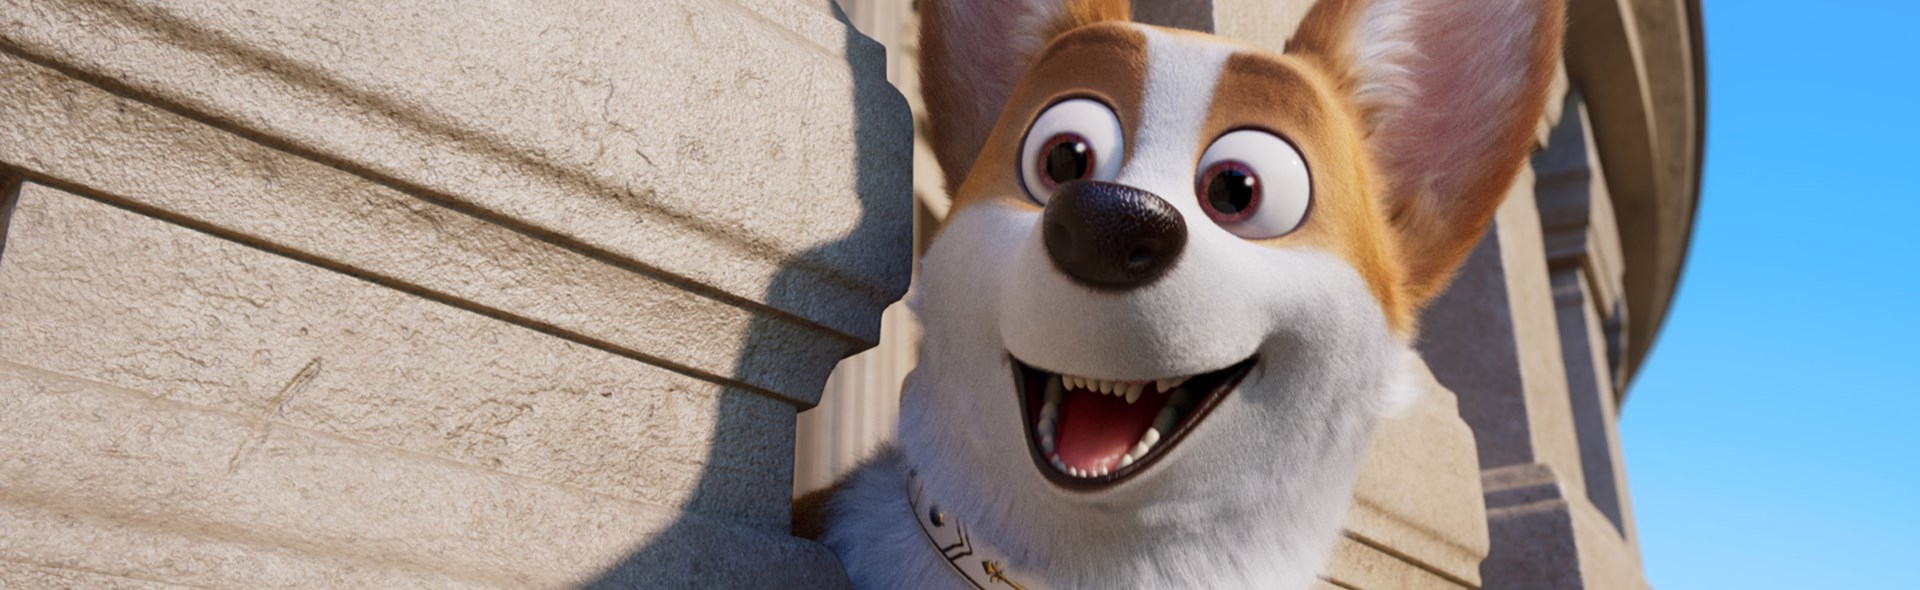 Film Sewcial: The Queen's Corgi (PG)